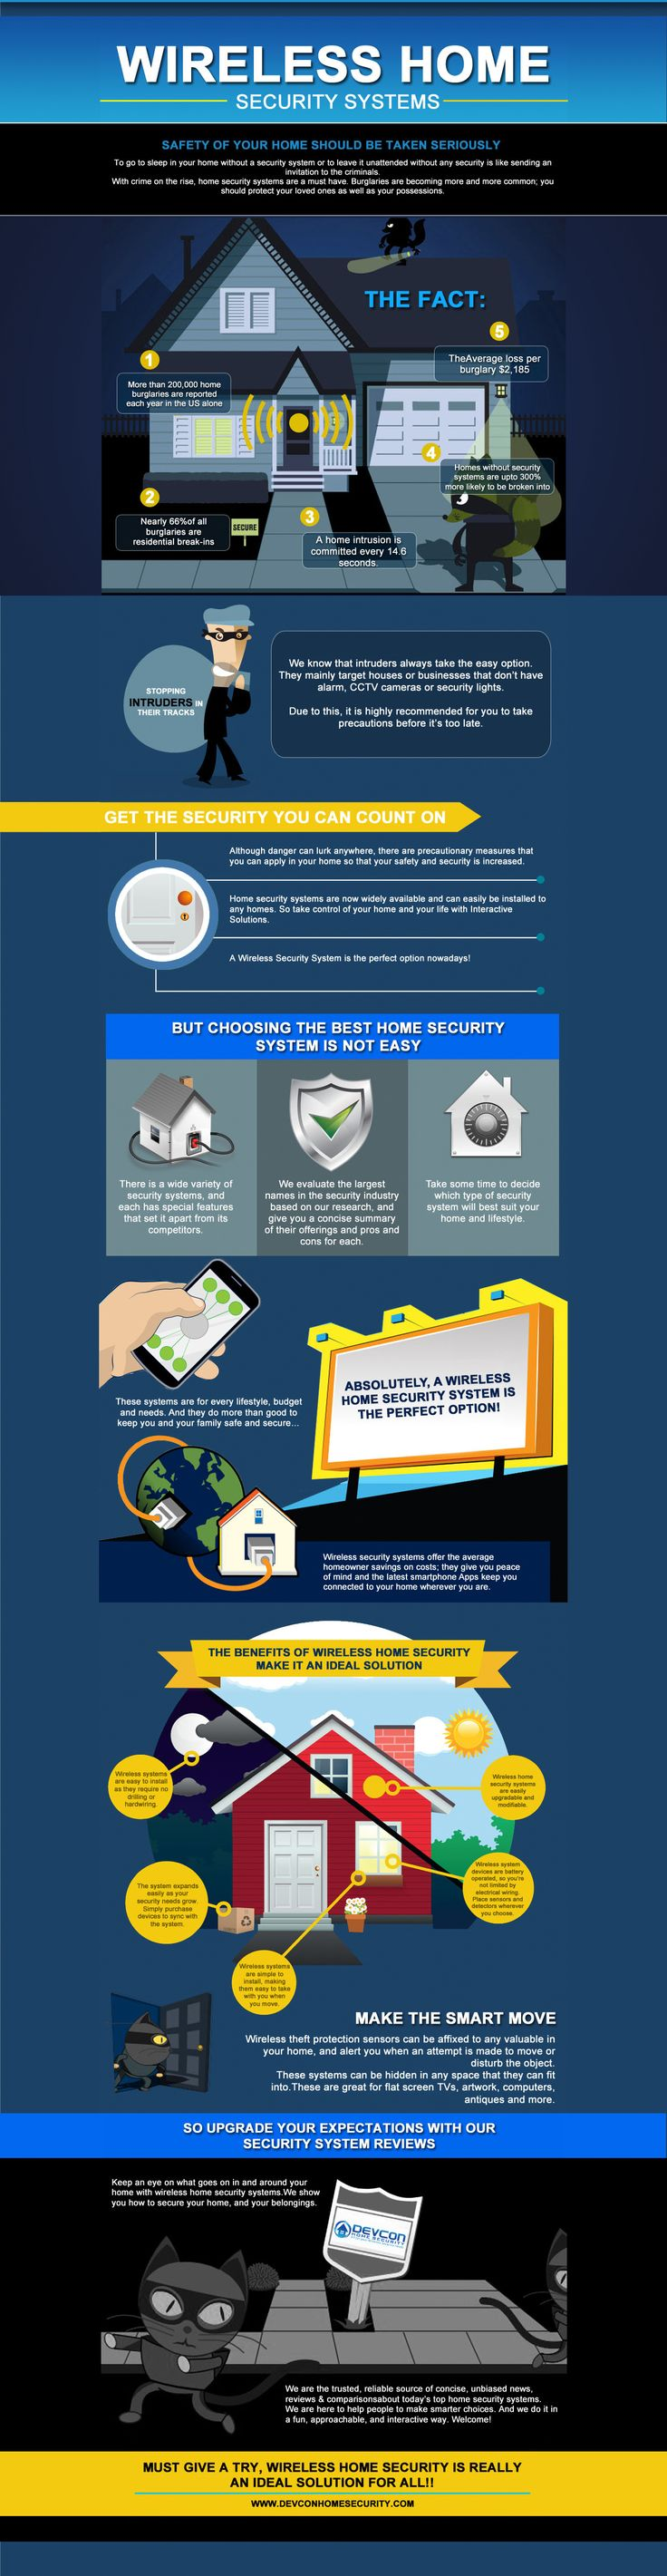 Basic Guide to Wireless Home Security Systems